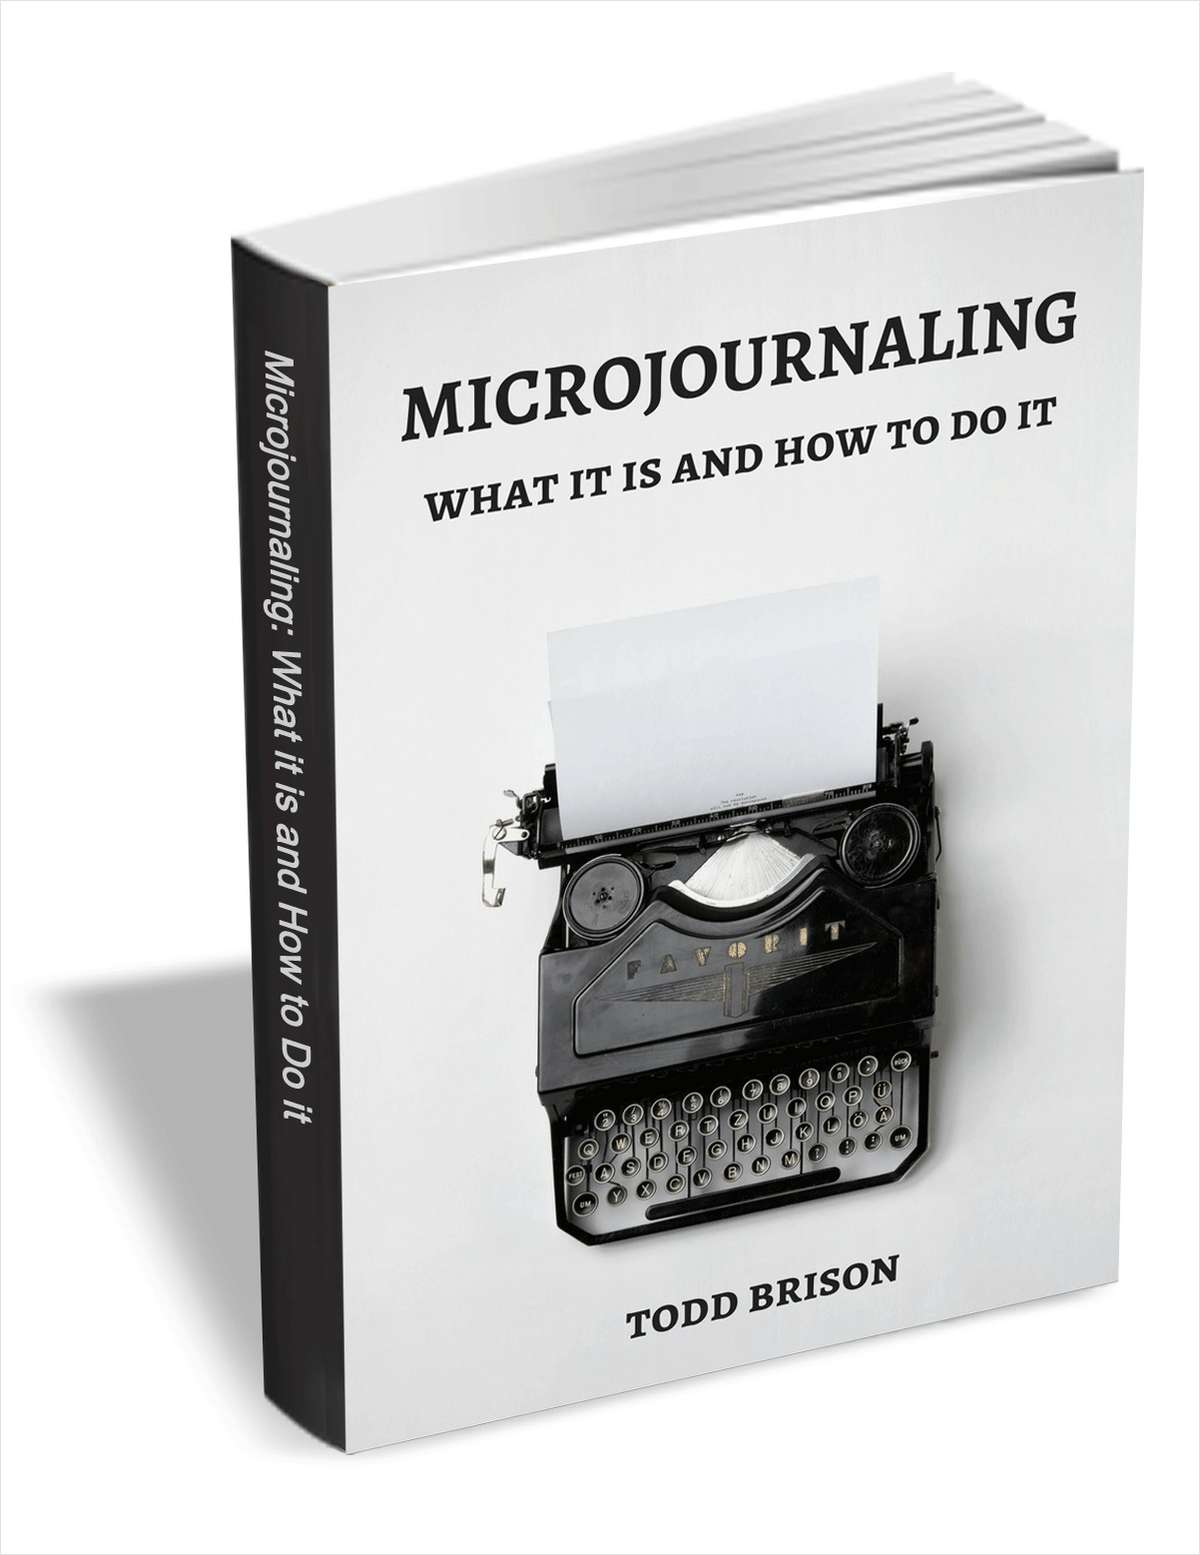 Mircojournaling - What It Is and How to Do It